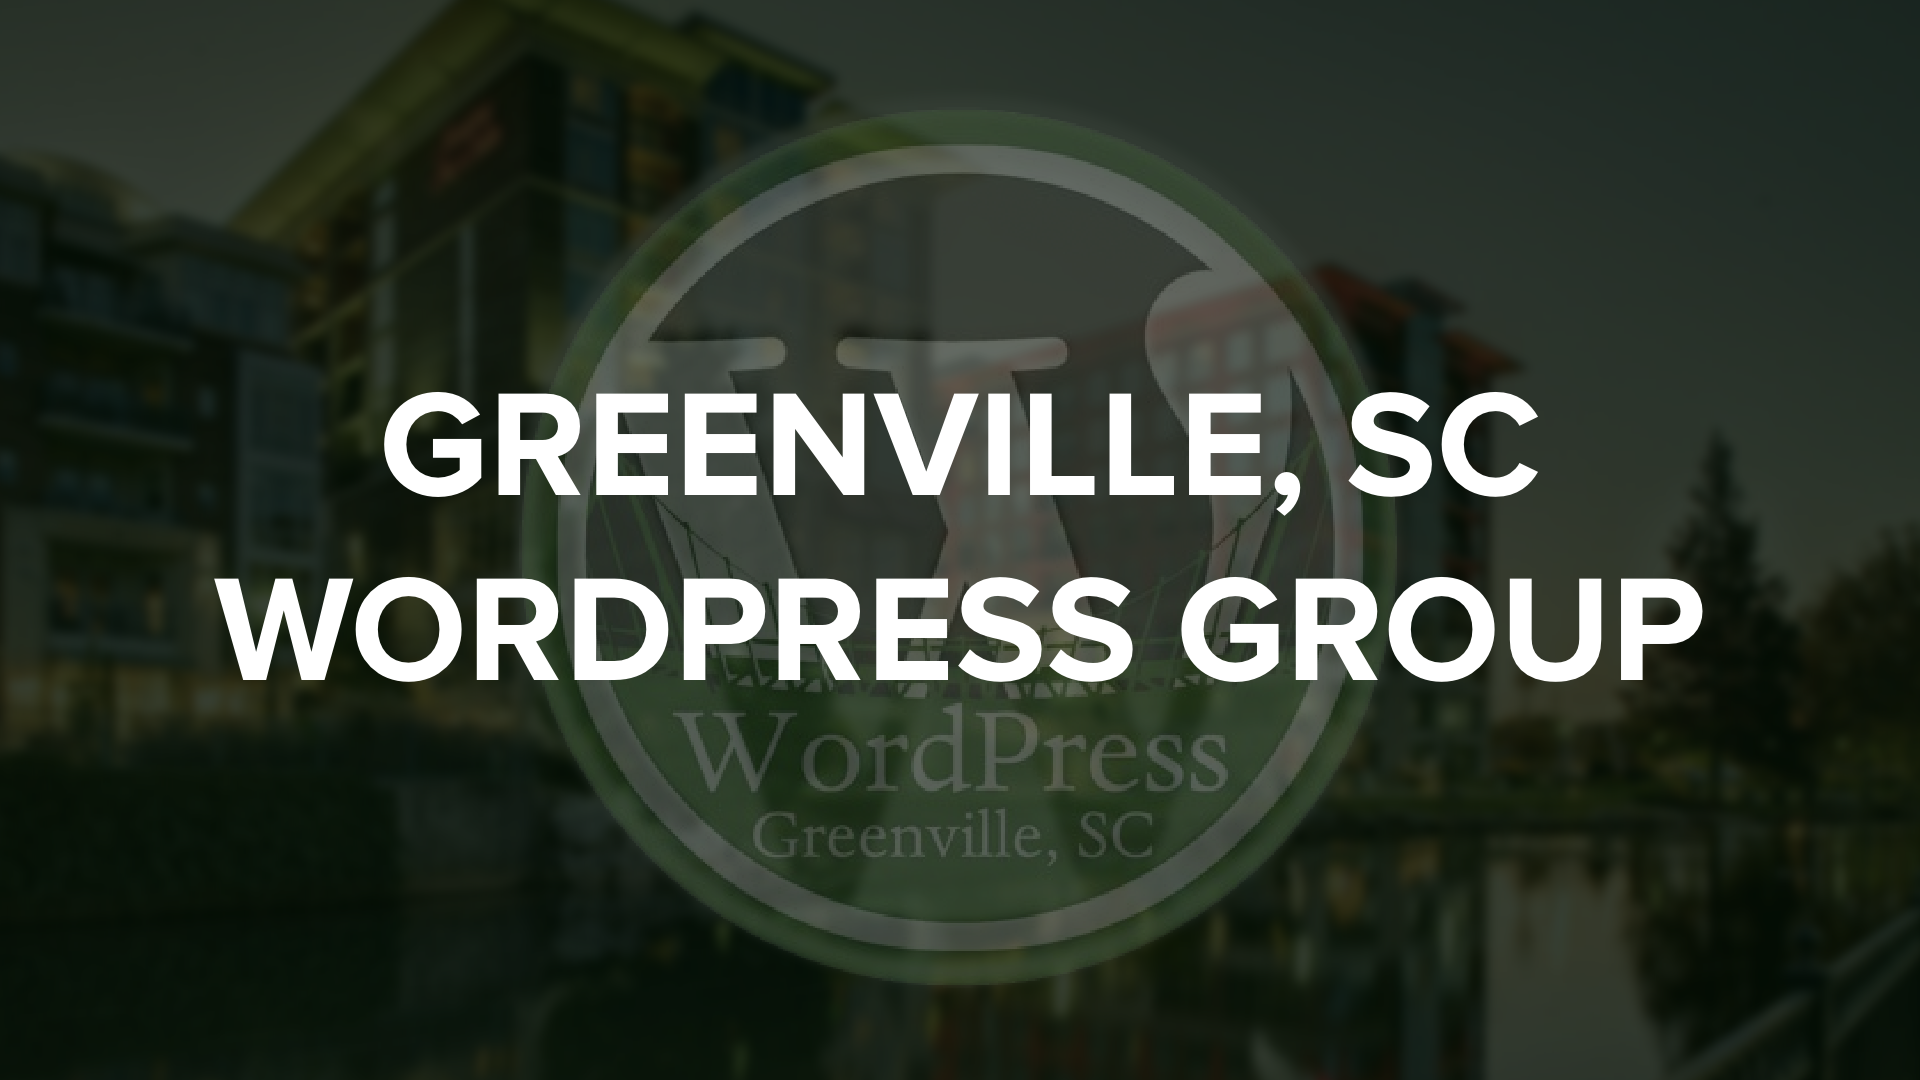 Greenville South Carolina WordPress Group